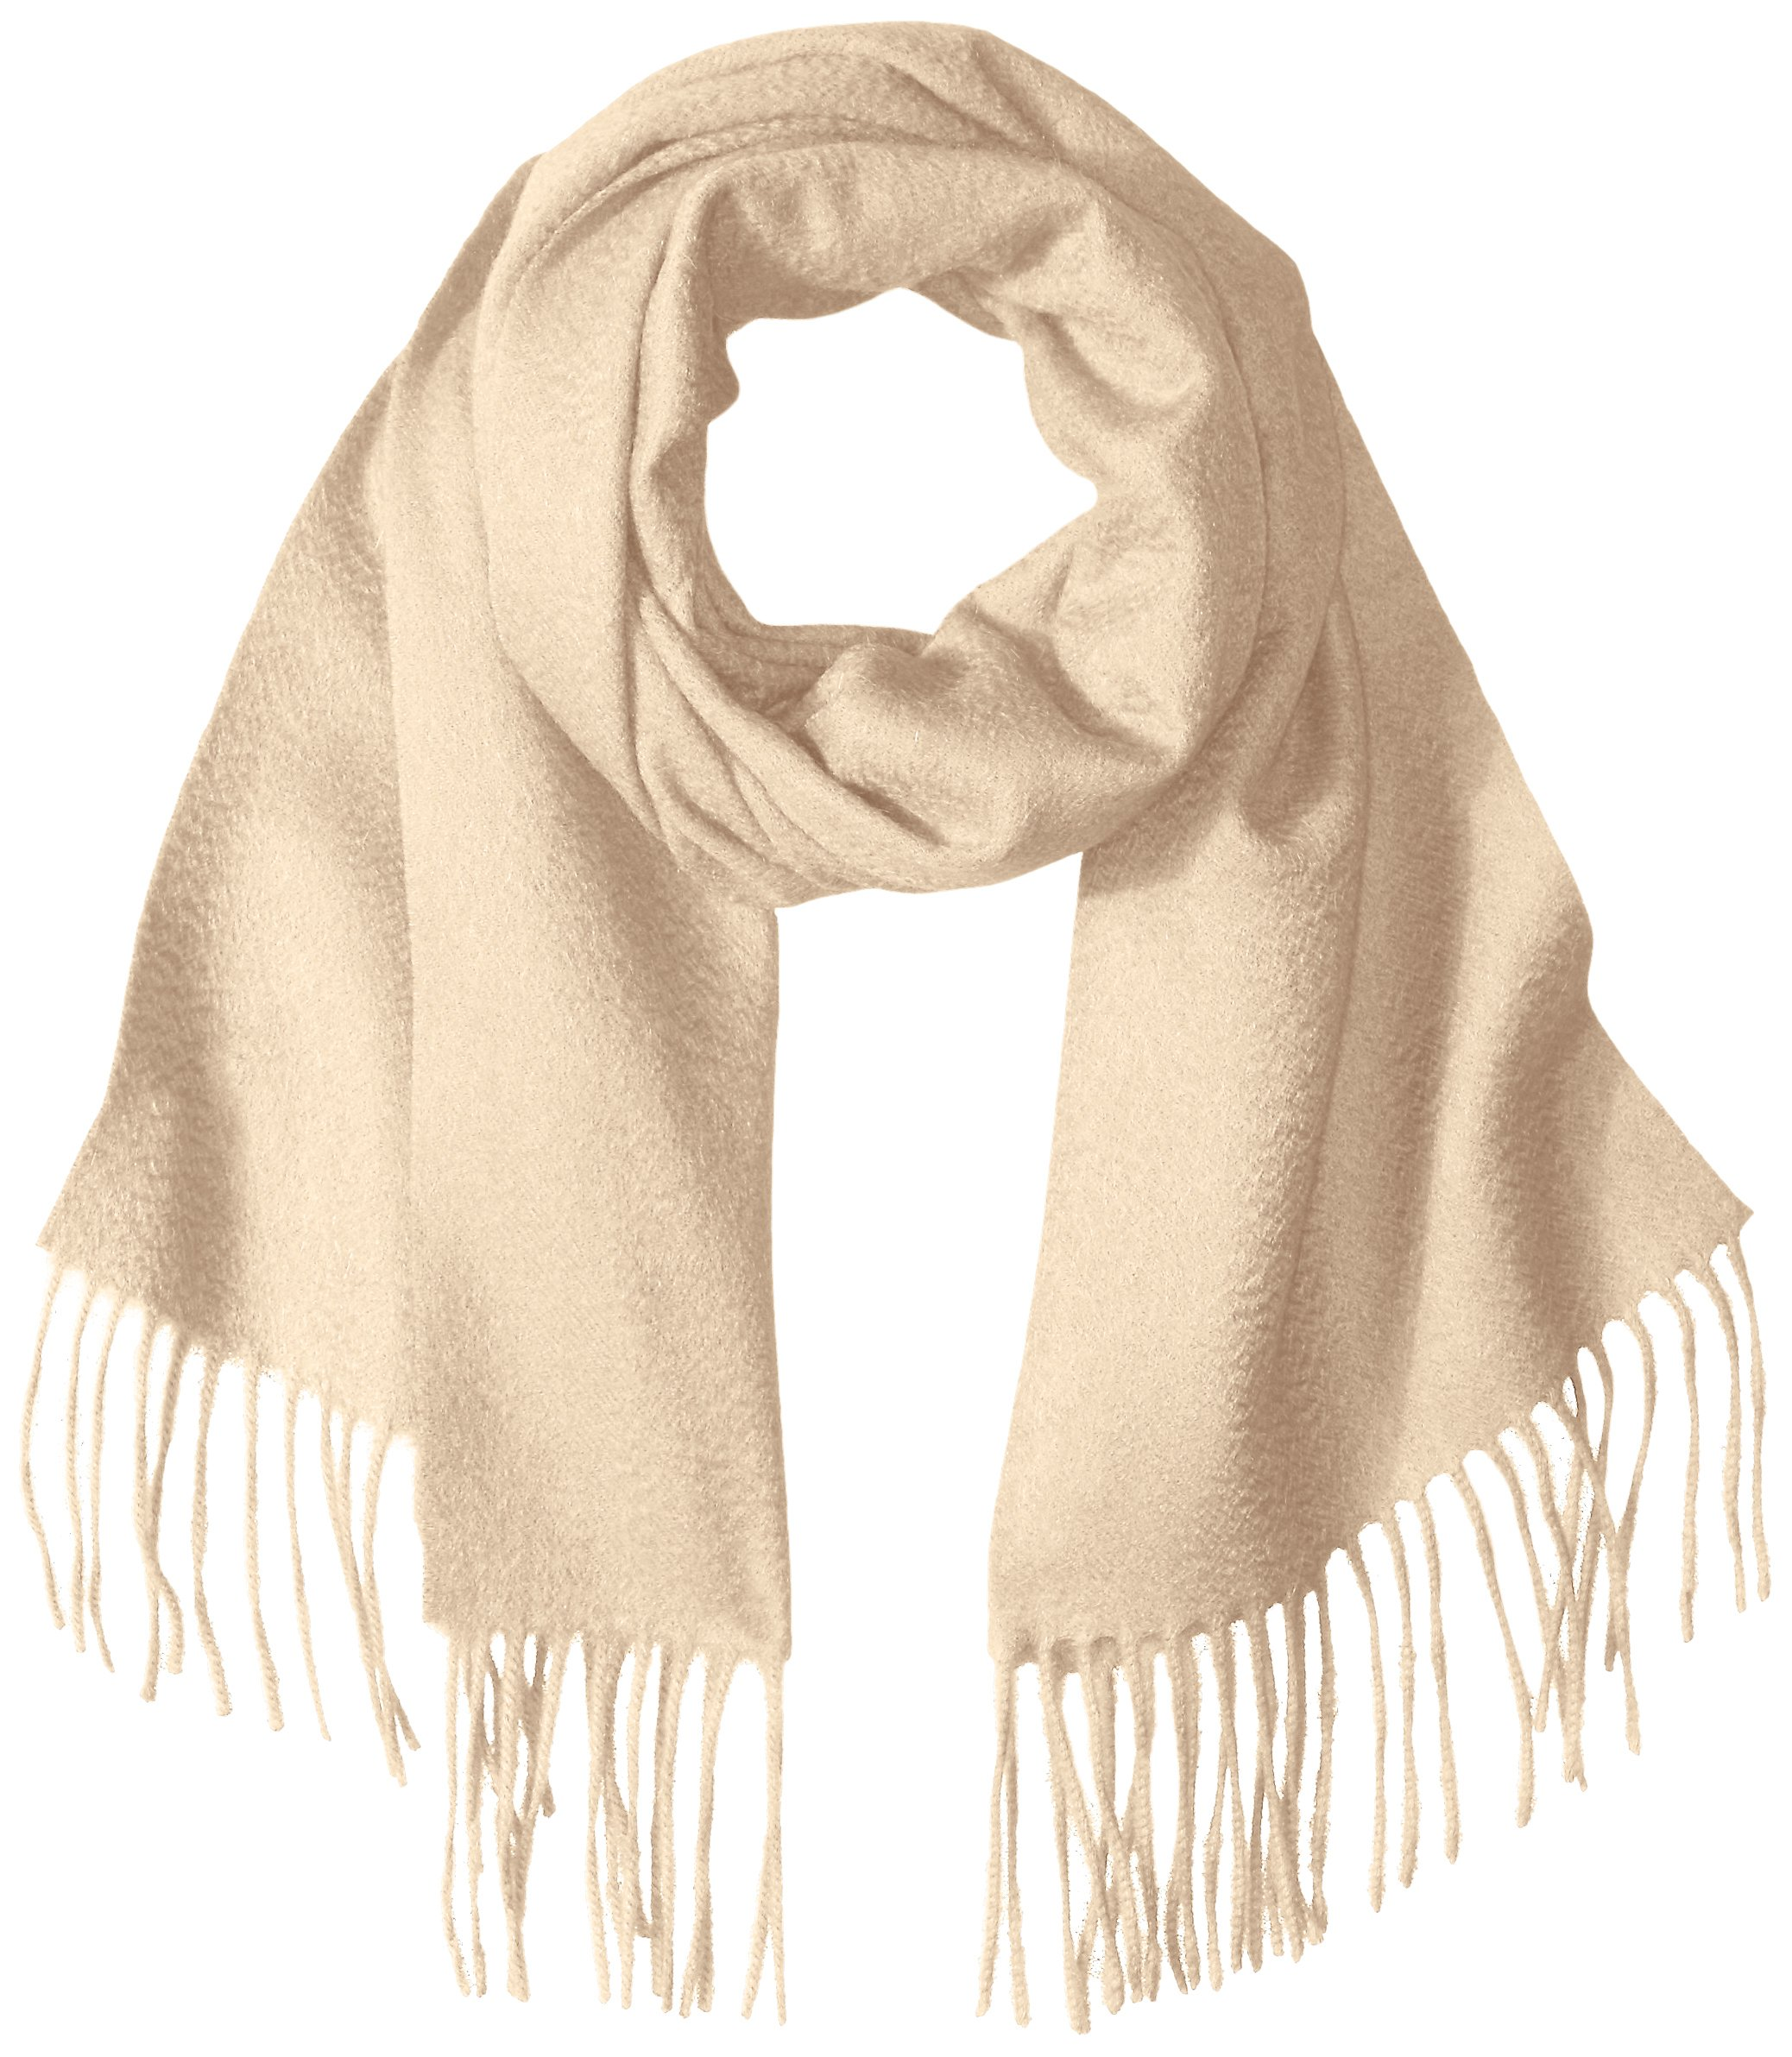 Sofia Cashmere Women's 100% Cashmere Woven Scarf with Fringe, Natural One